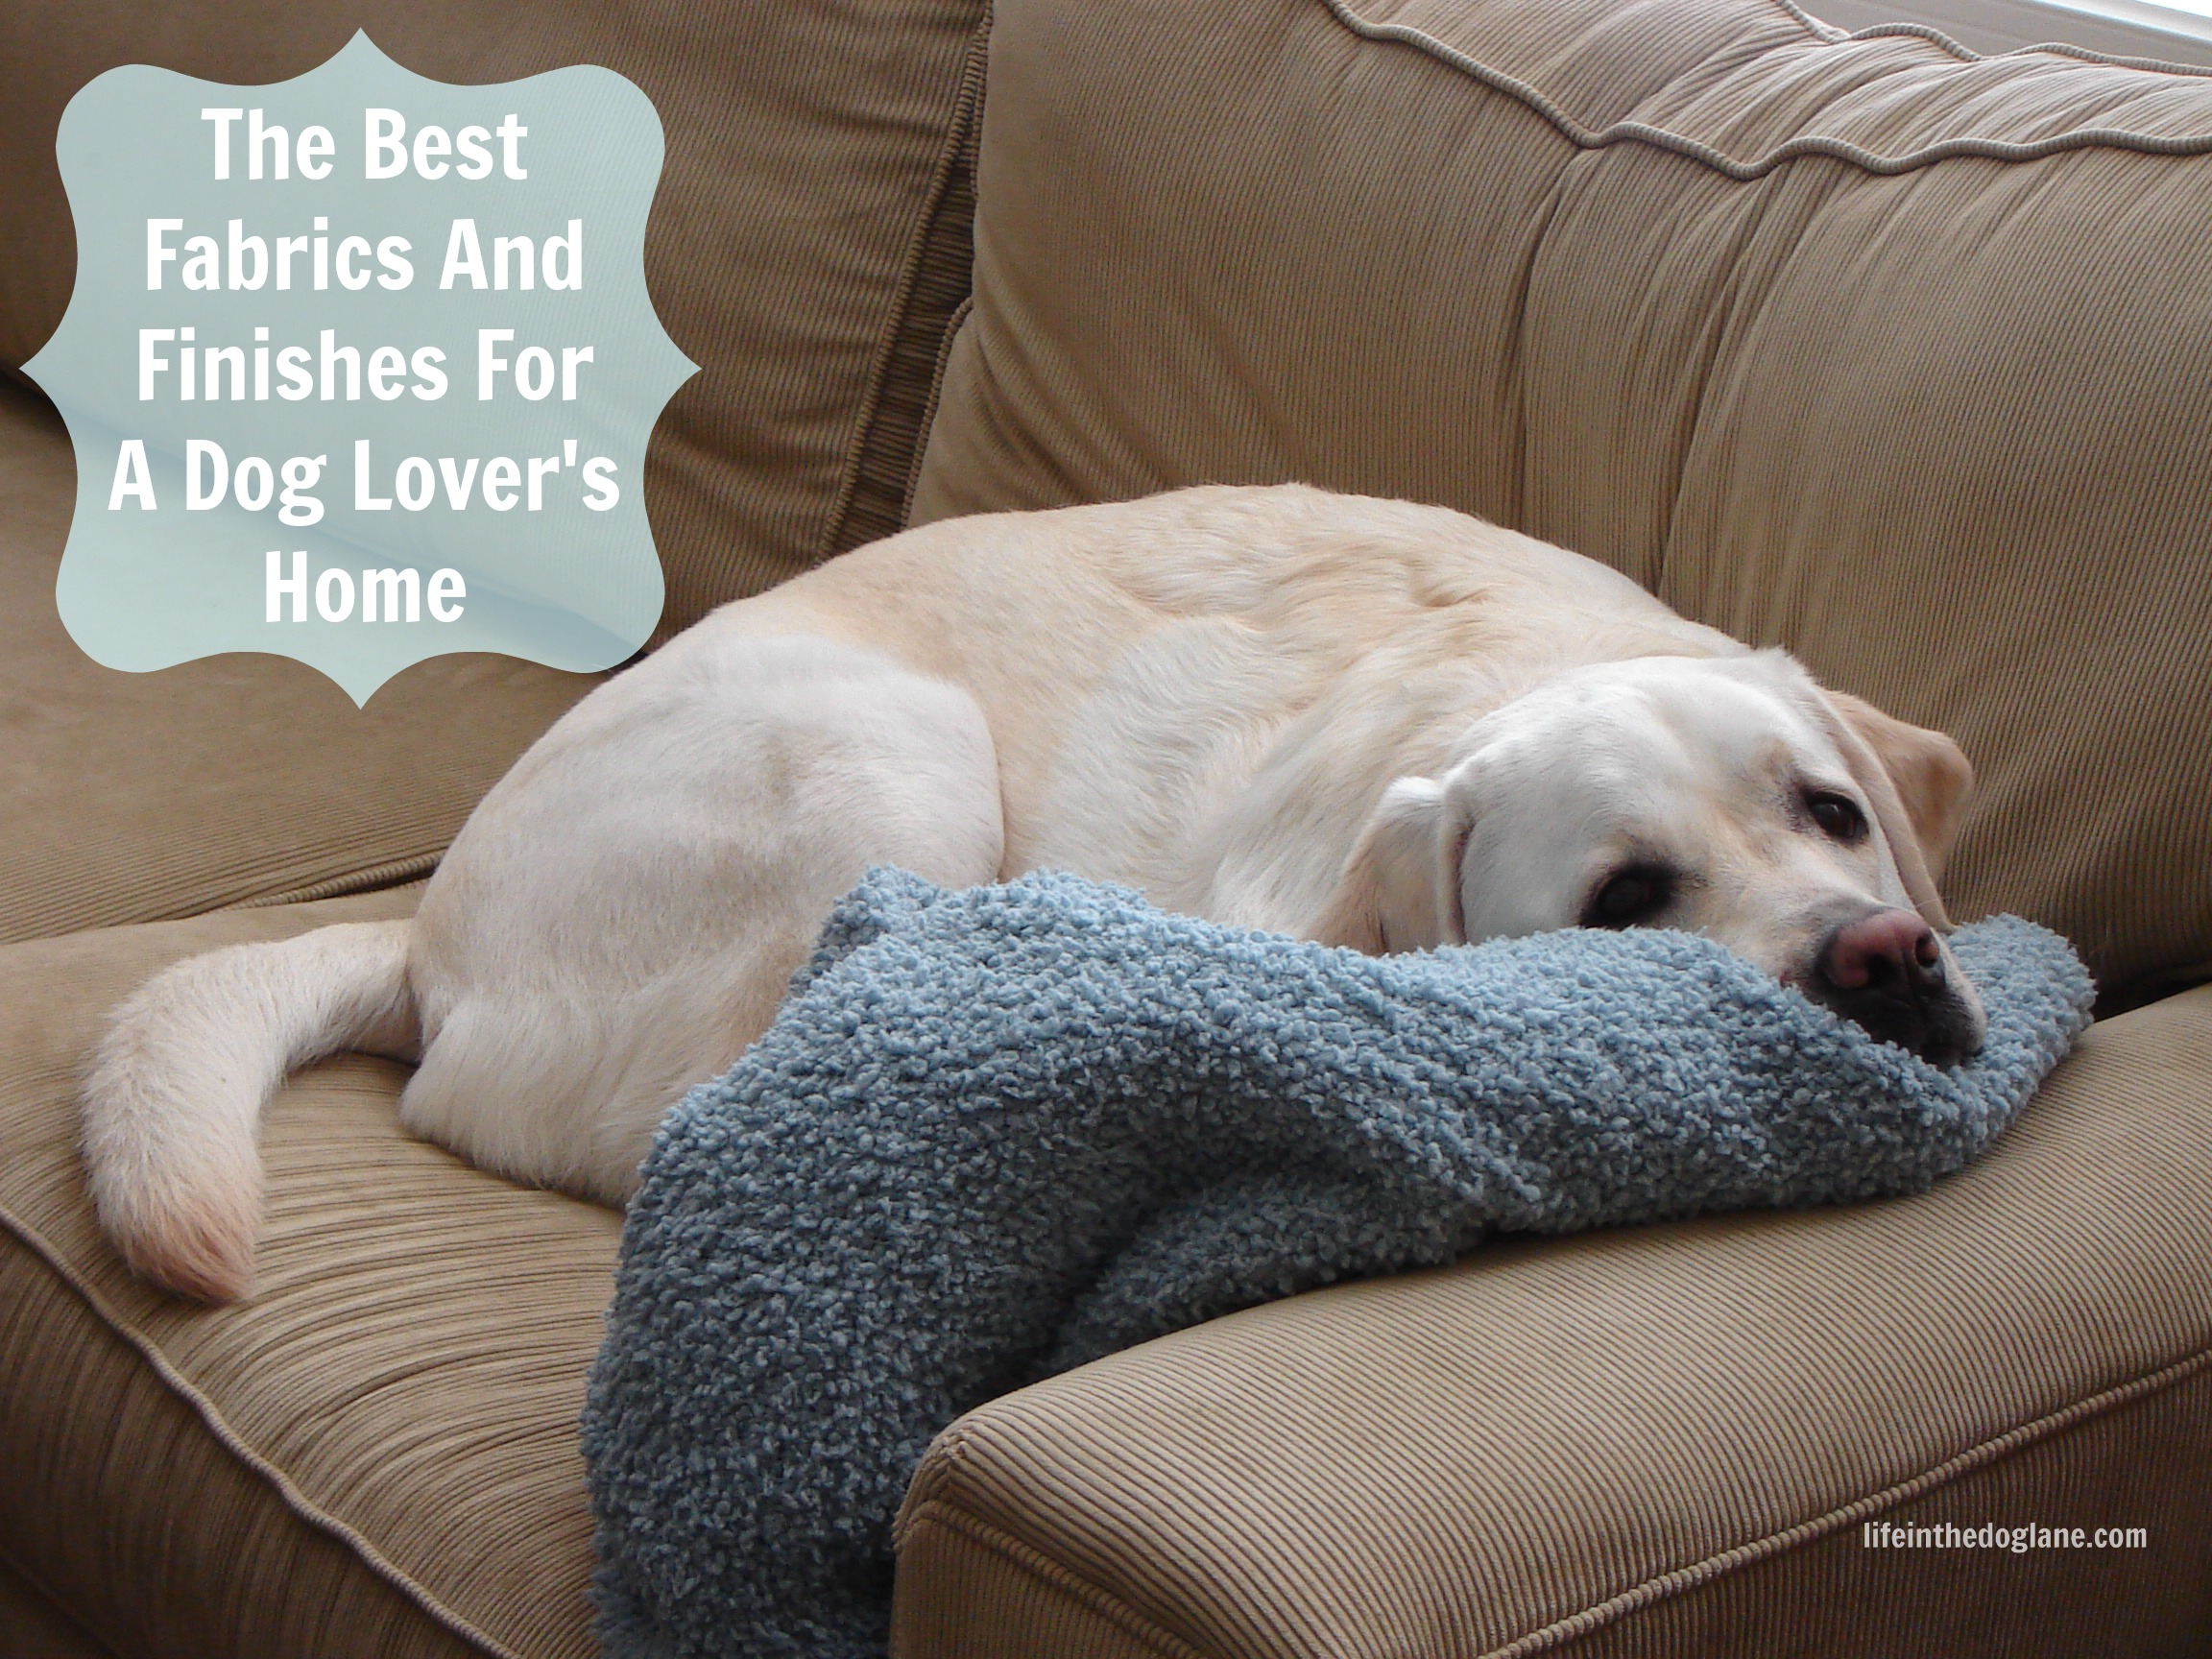 Merveilleux The Best Fabrics And Finishes For A Dog Loveru0027s Home